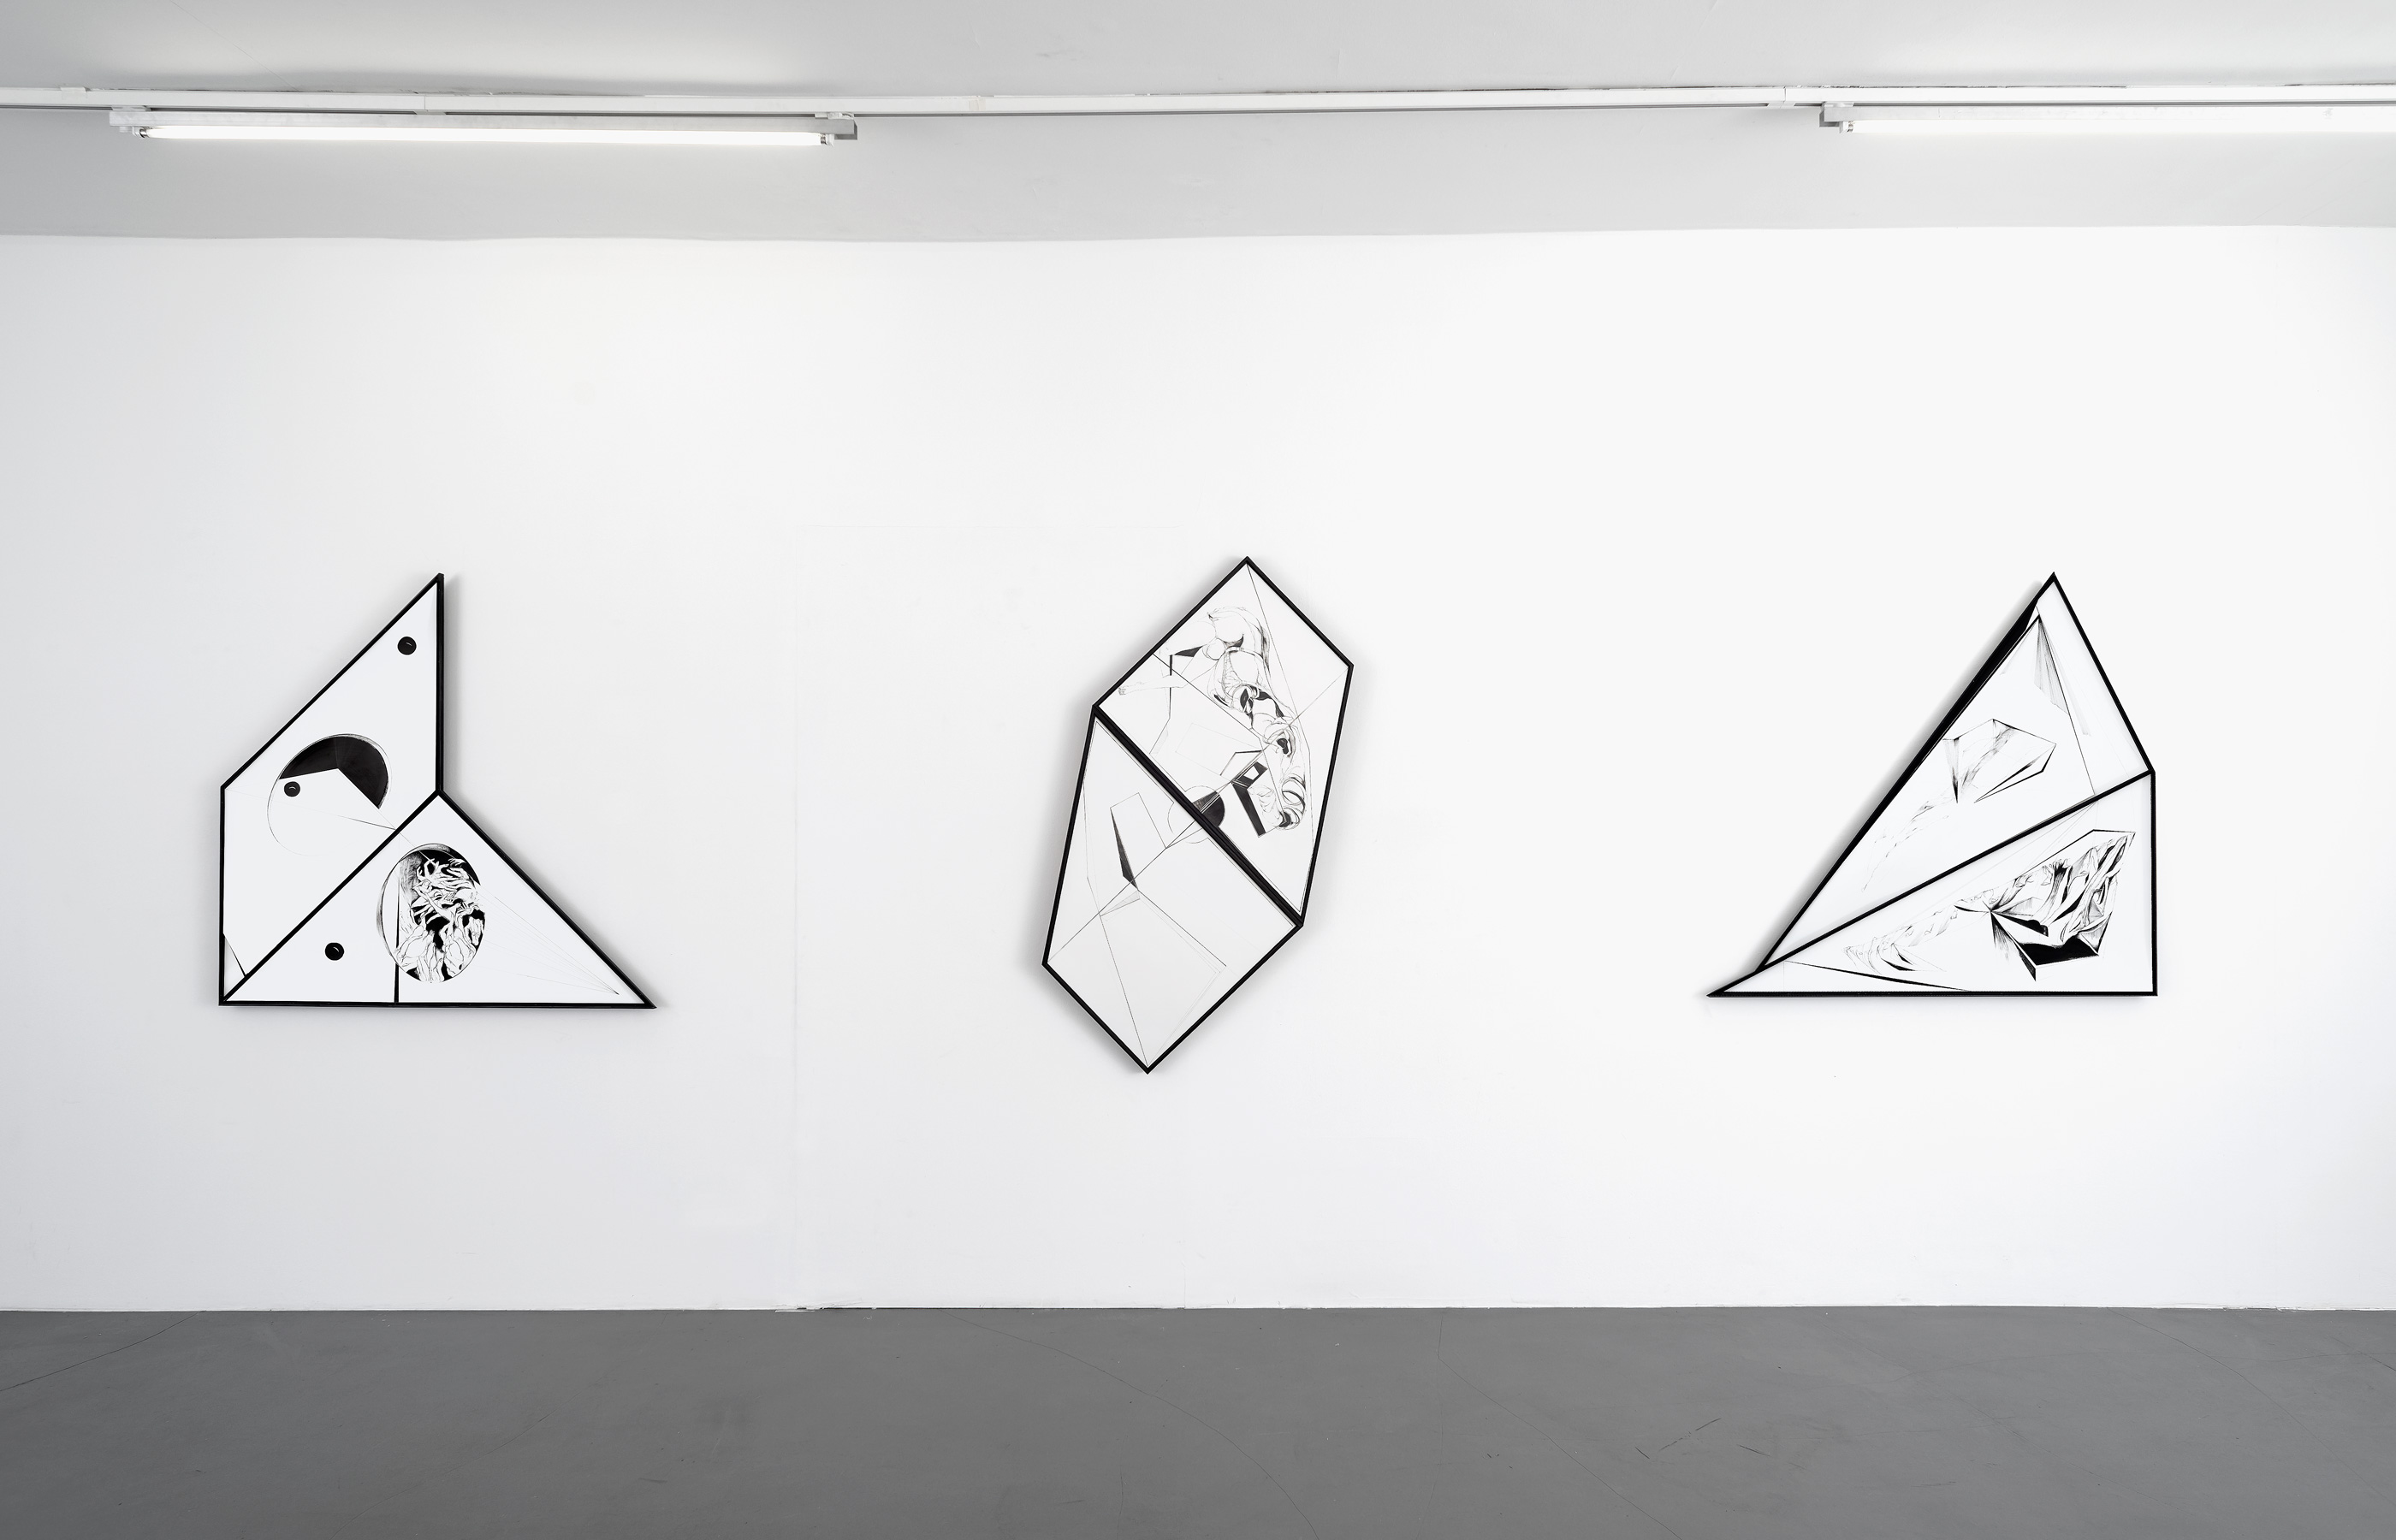 Nina Annabelle Maerkl, Scapes, 2016/2017, ink on paper, cutouts, wood, each approx. 120 x 120 x 7 cm / 120 x 150 x 7 cm